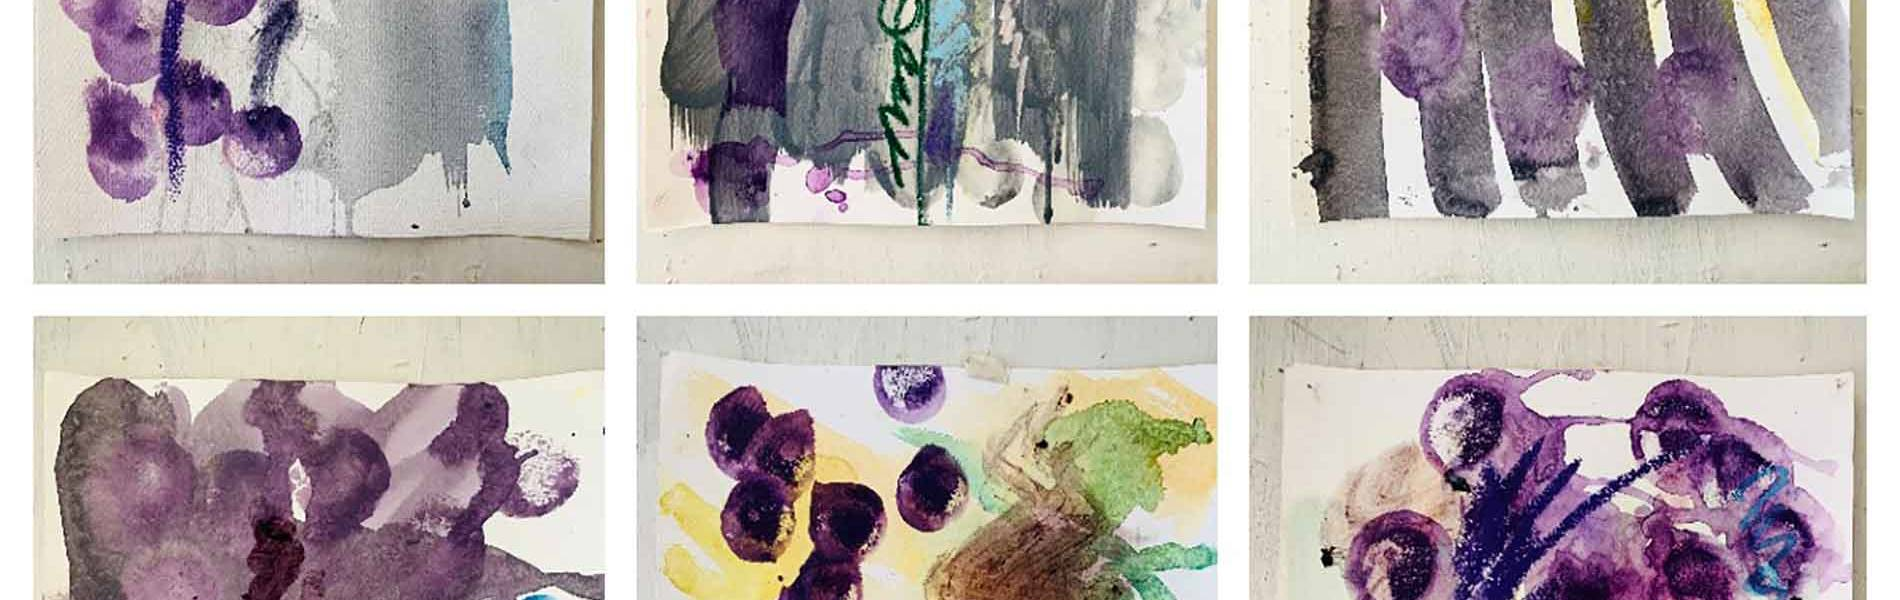 "Blueberry Sequence II  - Oil Pastel, Aquarelle, Gouache & BlueBerries – 2018 – 11.7x16.5"" - $ 650 each"